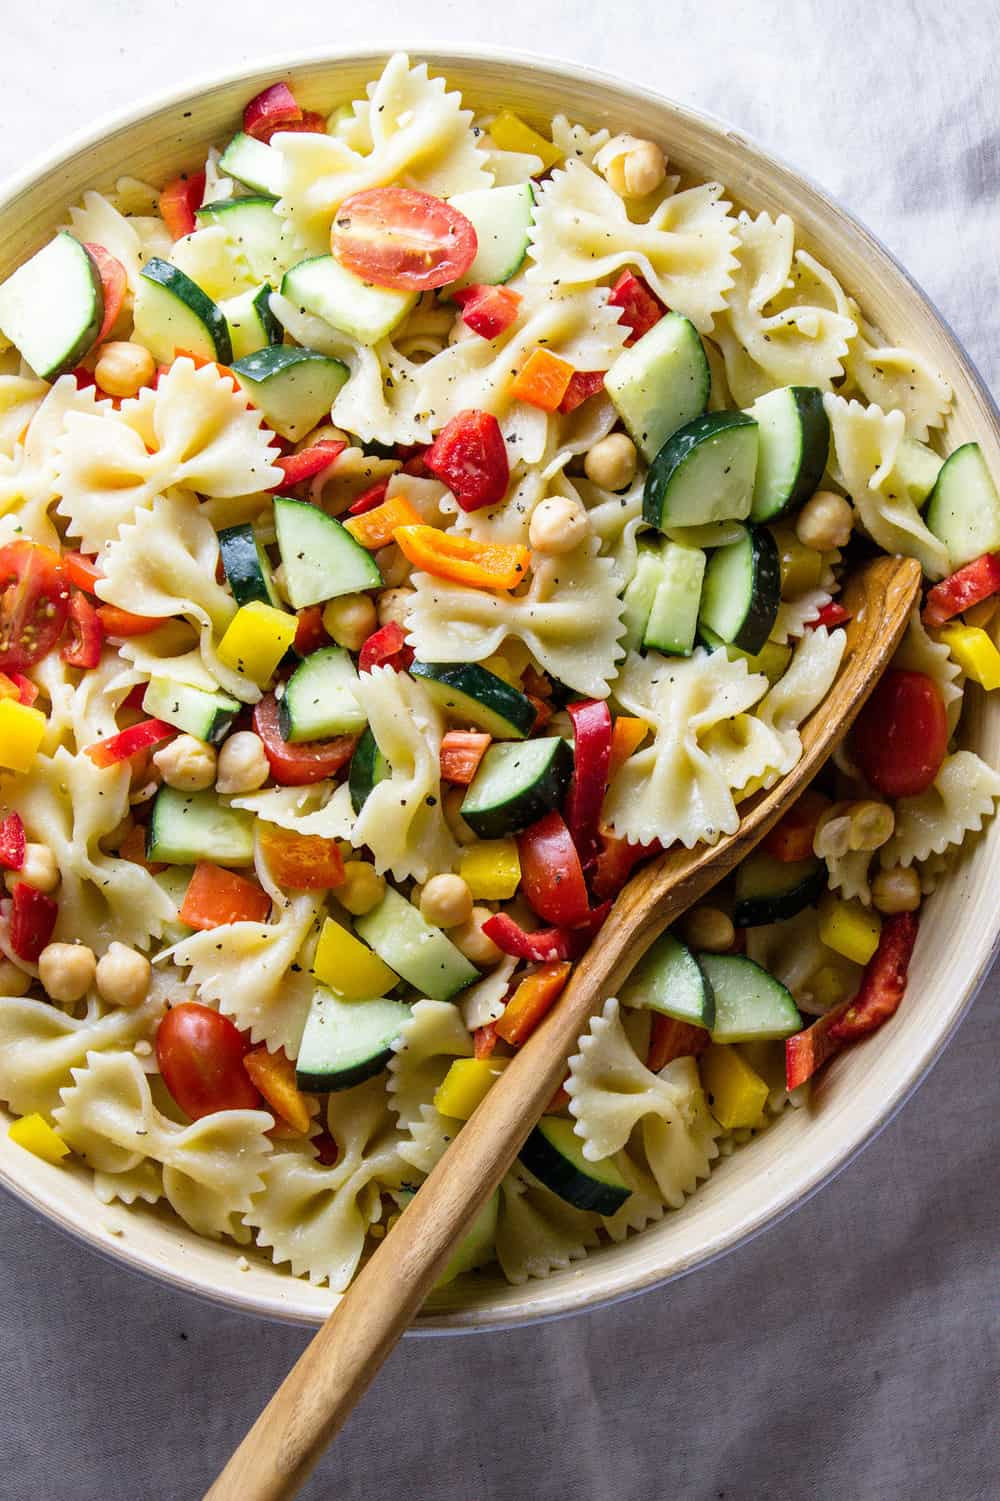 Easy Healthy Pasta Salad  QUICK N HEALTHY CHICKPEA VEGETABLE PASTA SALAD THE